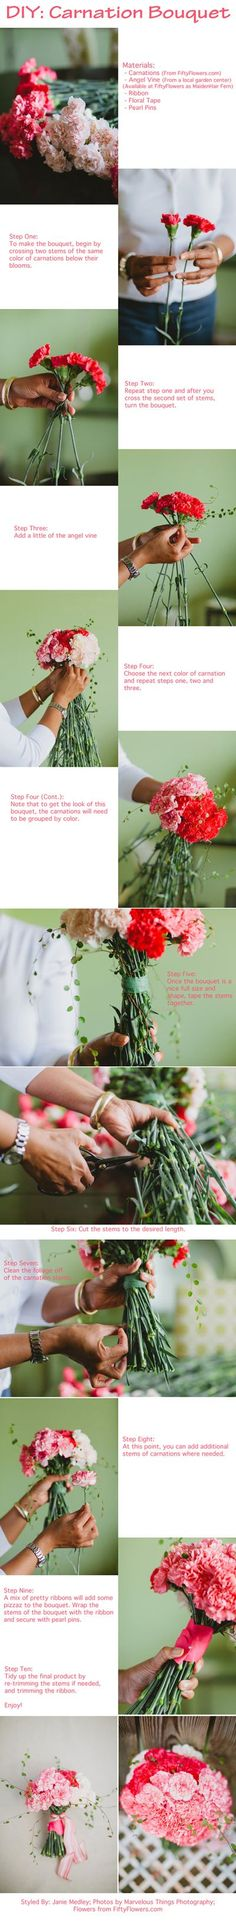 DIY Carnation Bouquet! #DIY #Wedding #Bouquet